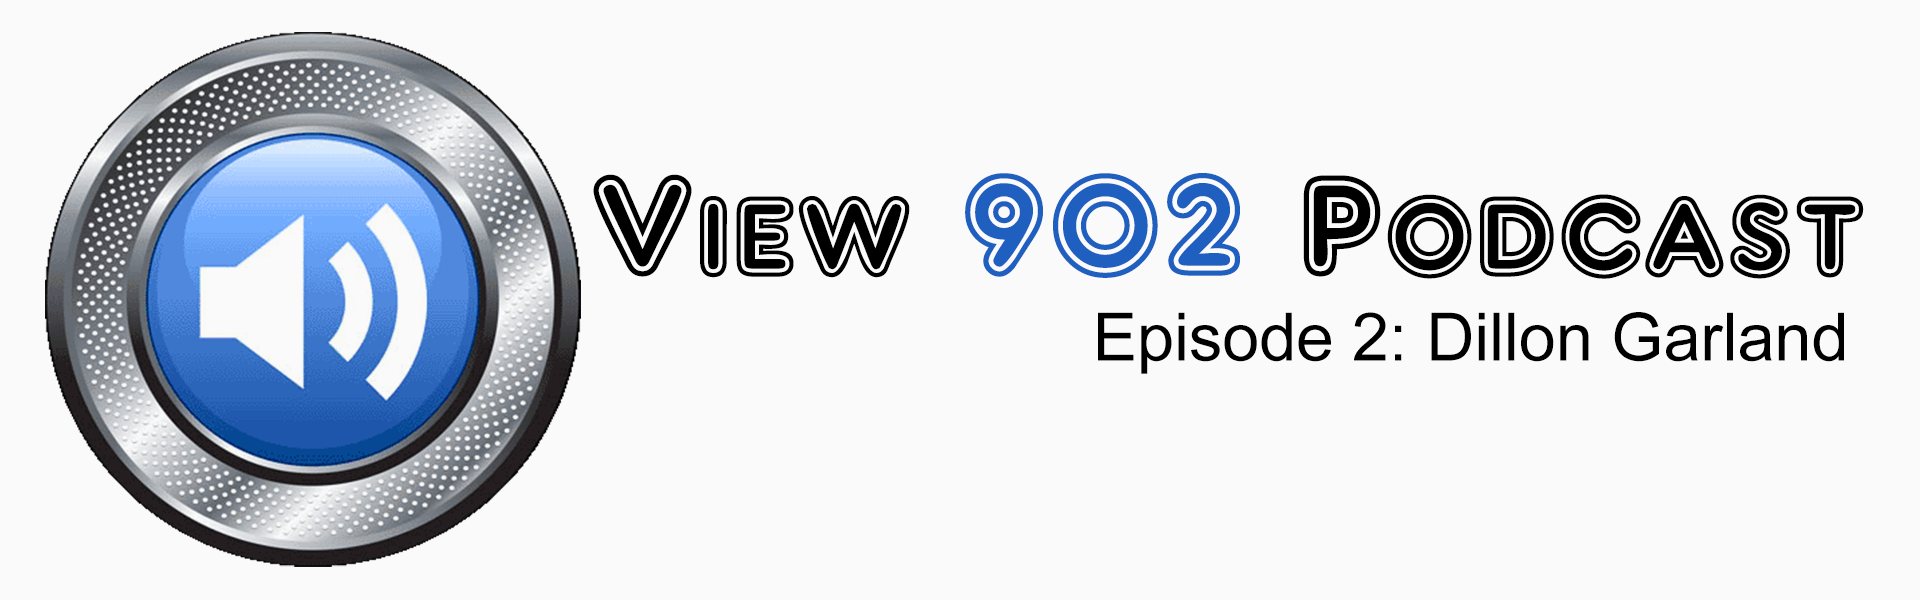 view-902-episode-2-garland